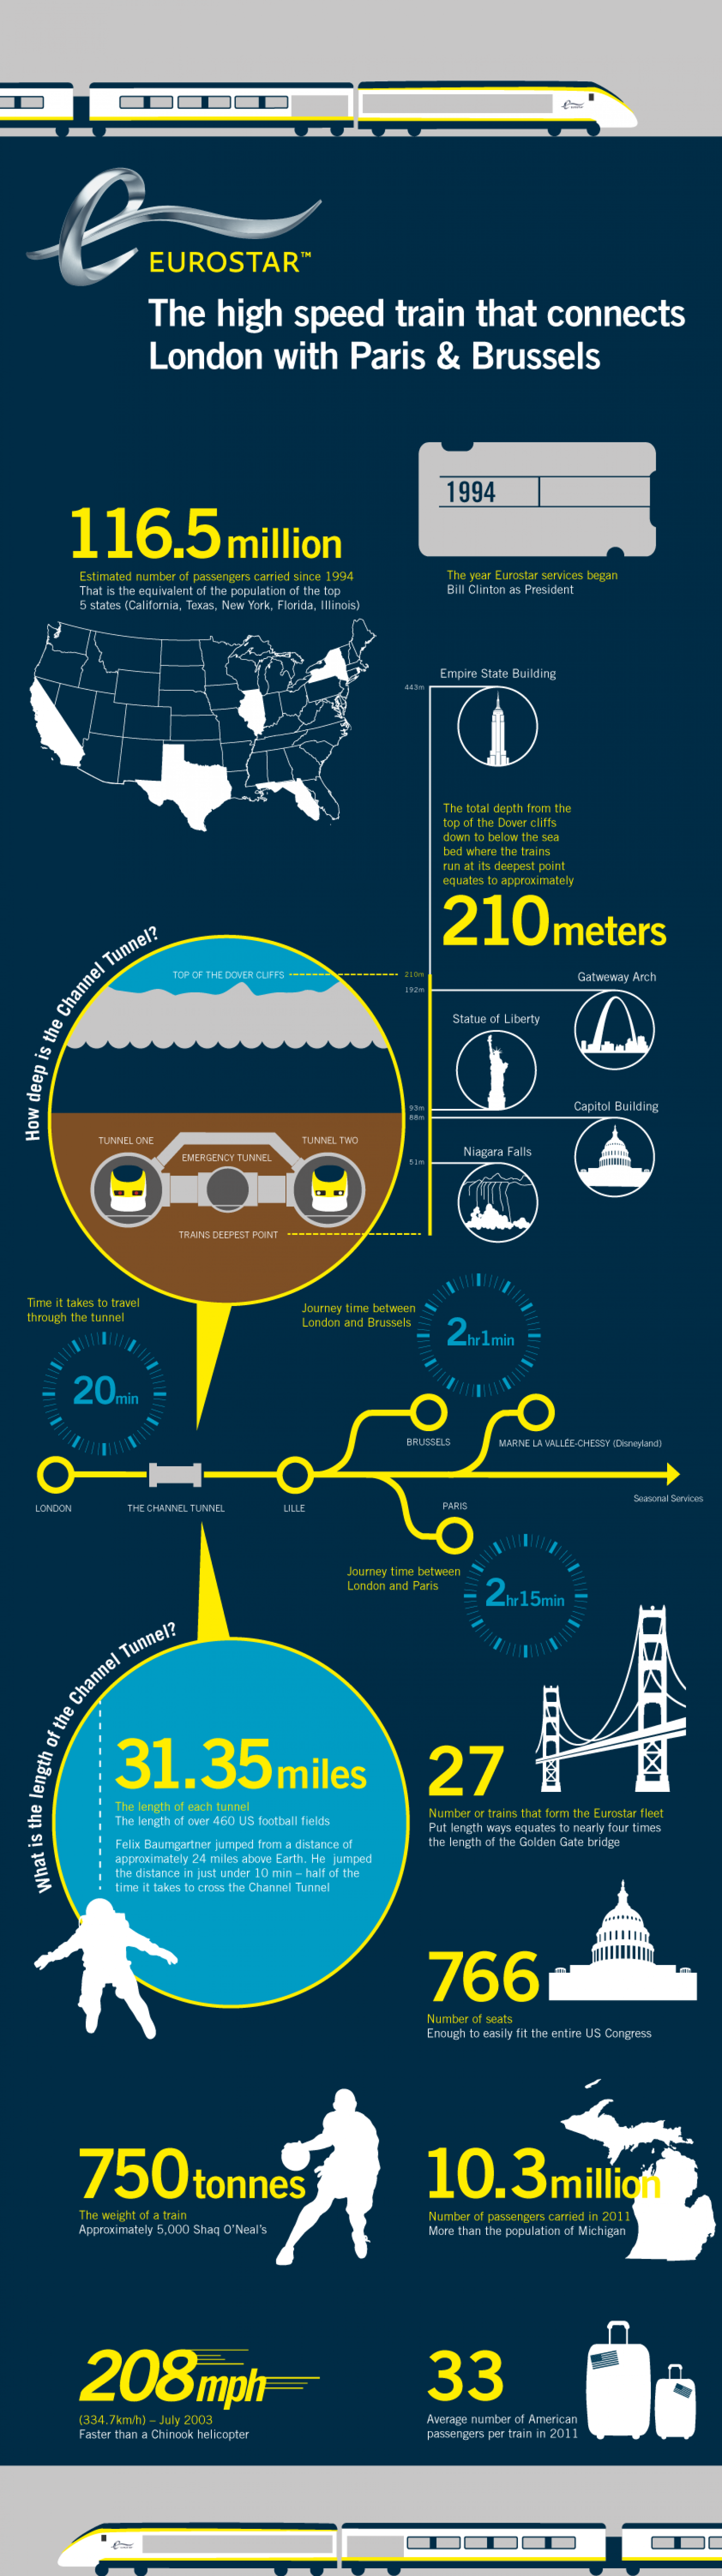 Eurostar: The high speed train that connects London with Paris & Brussels Infographic